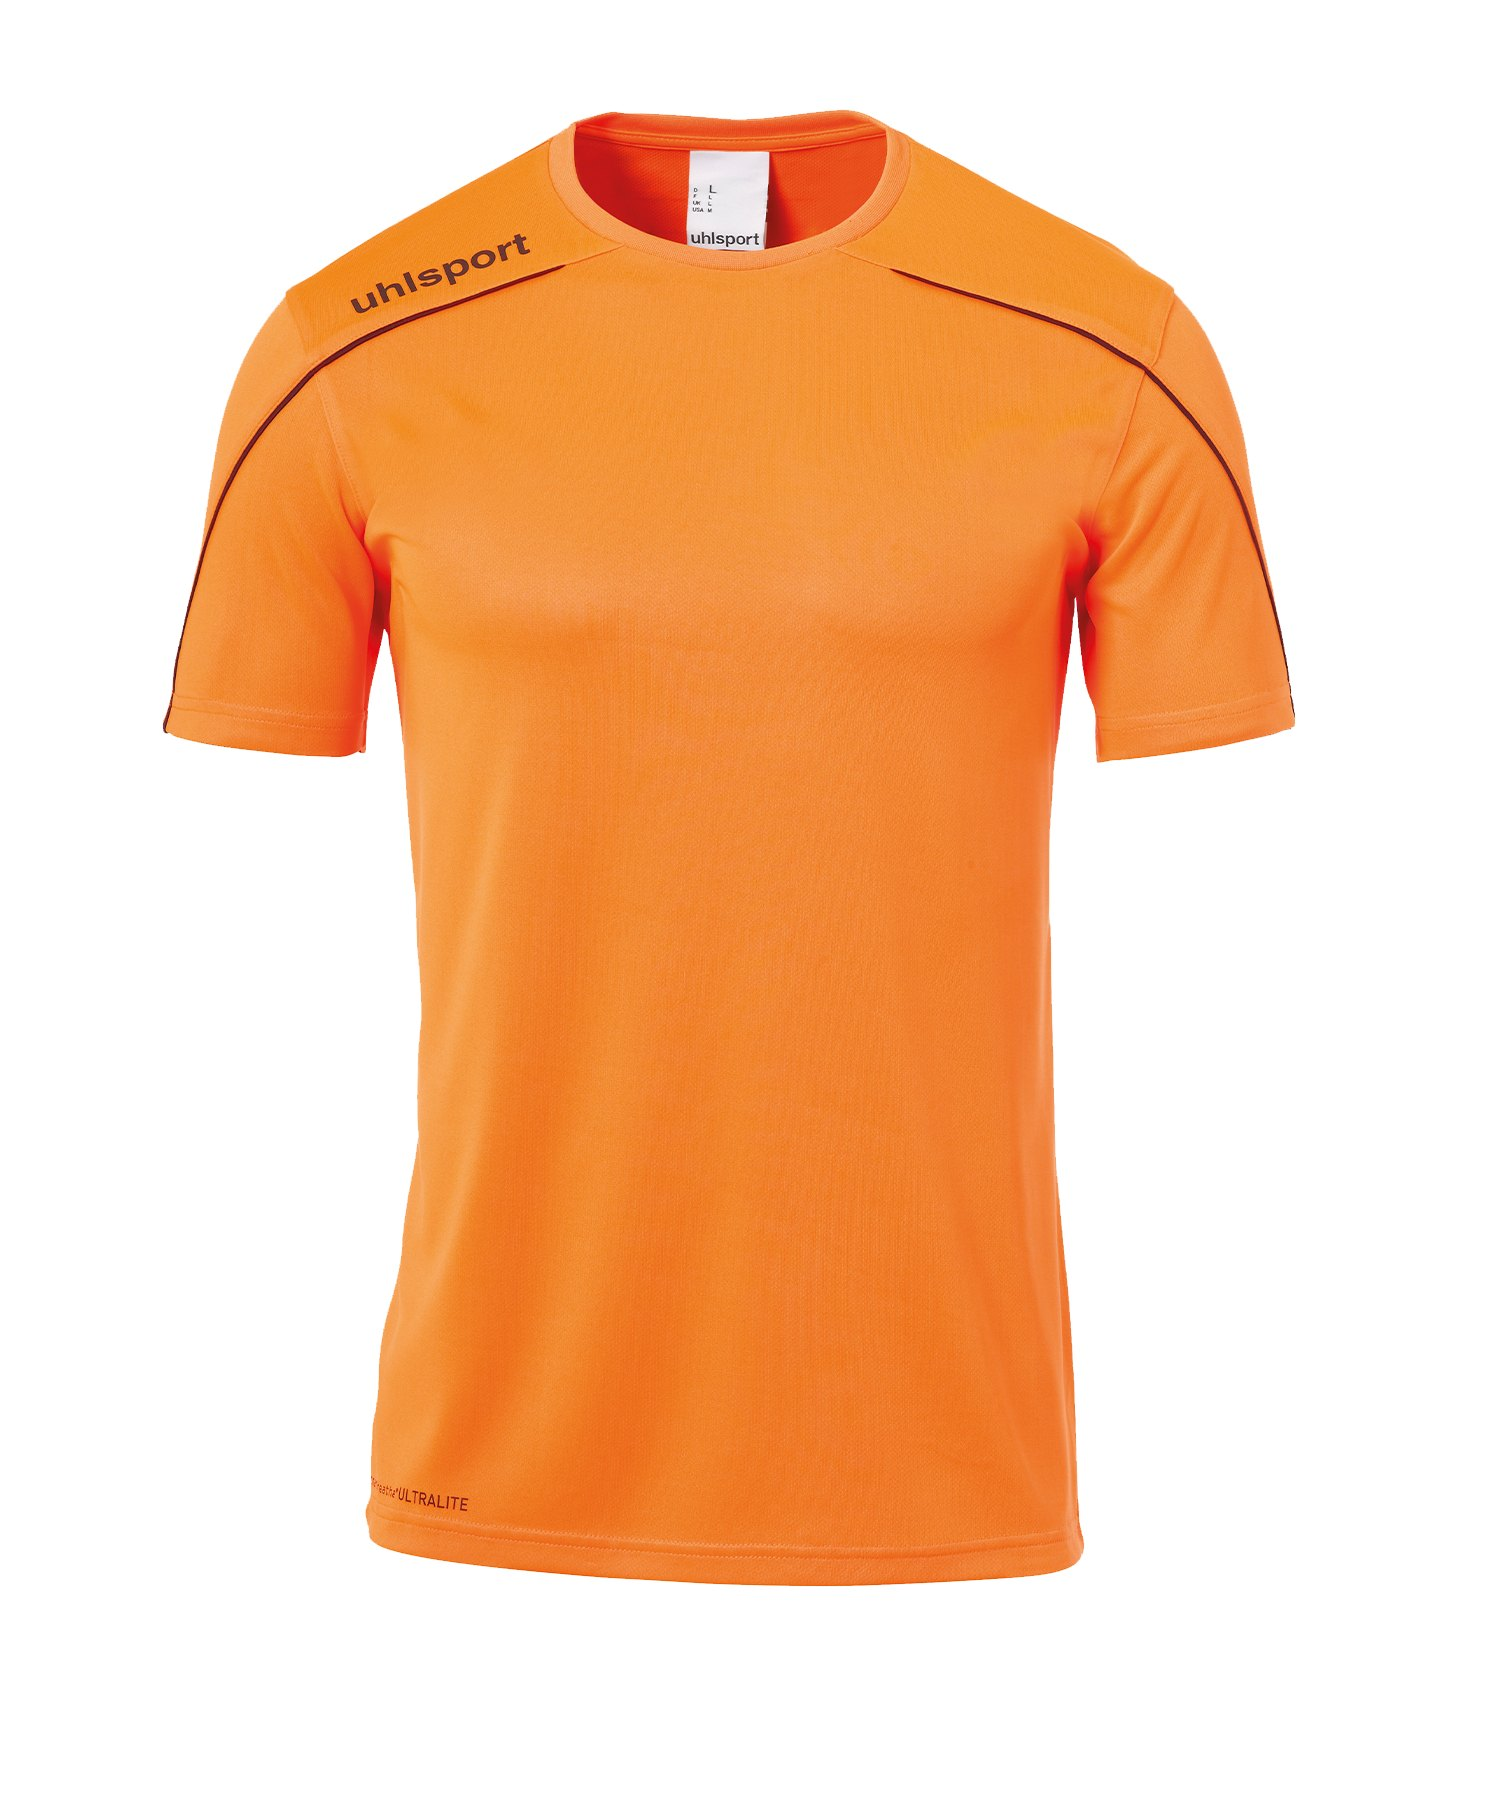 Uhlsport Stream 22 Trikot kurzarm Kids Orange F09 - Orange